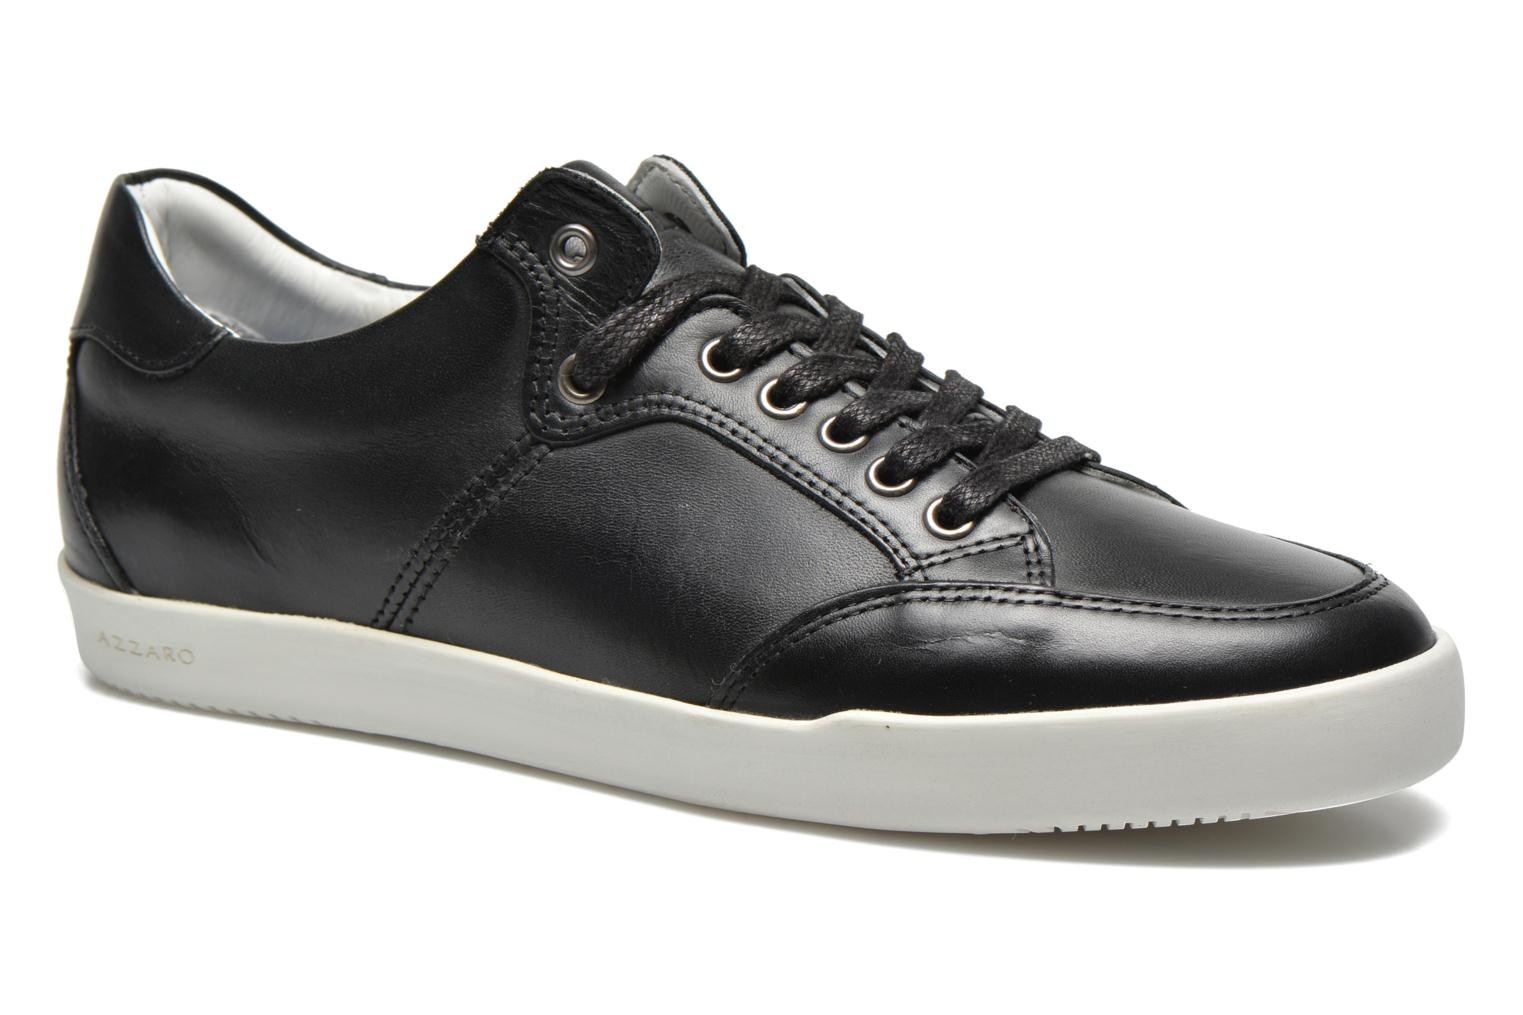 Sneakers Yvelin by Azzaro